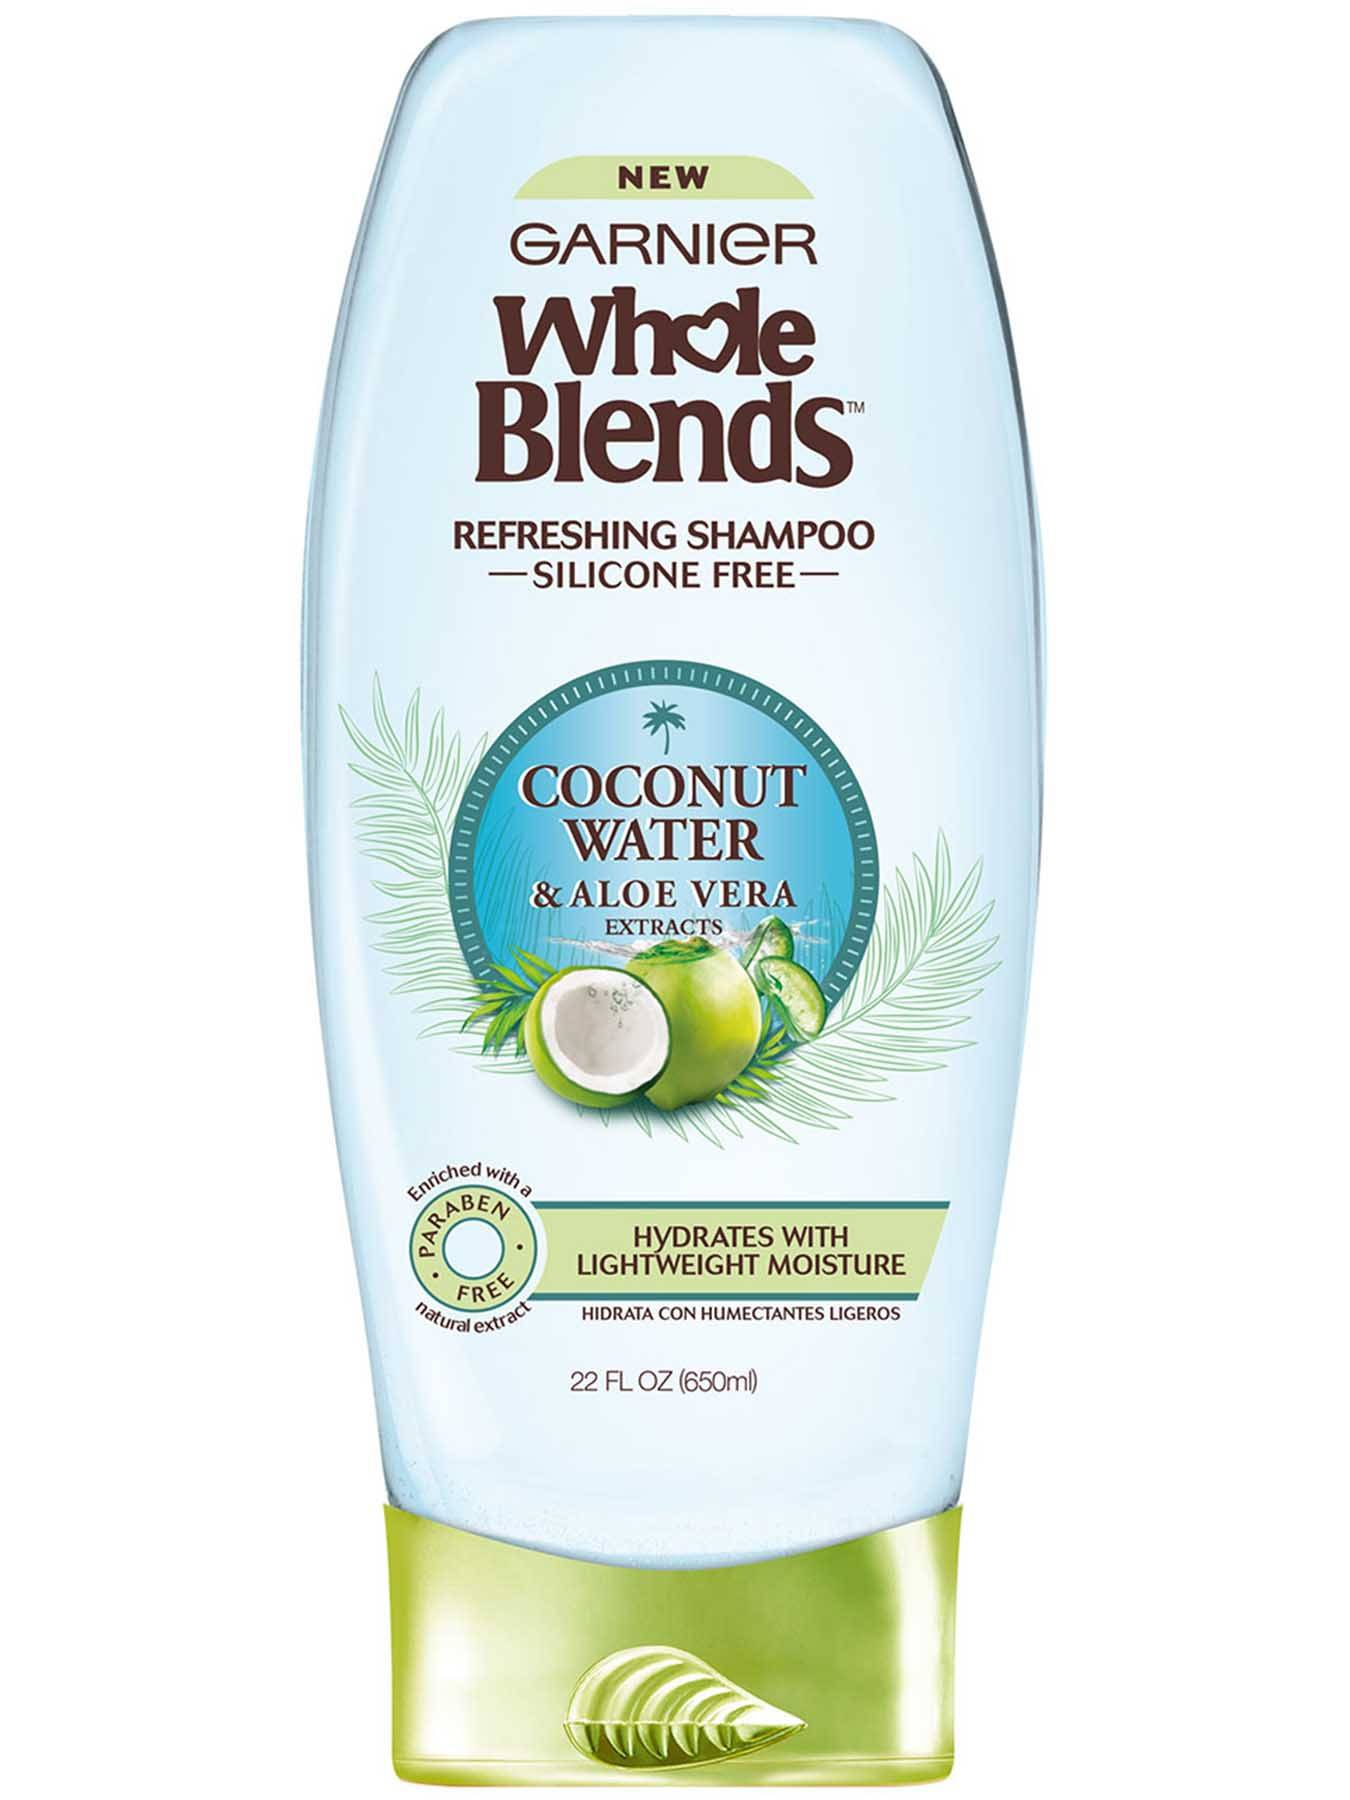 Whole Blends Natural Ingredient Hair Care Products Garnier